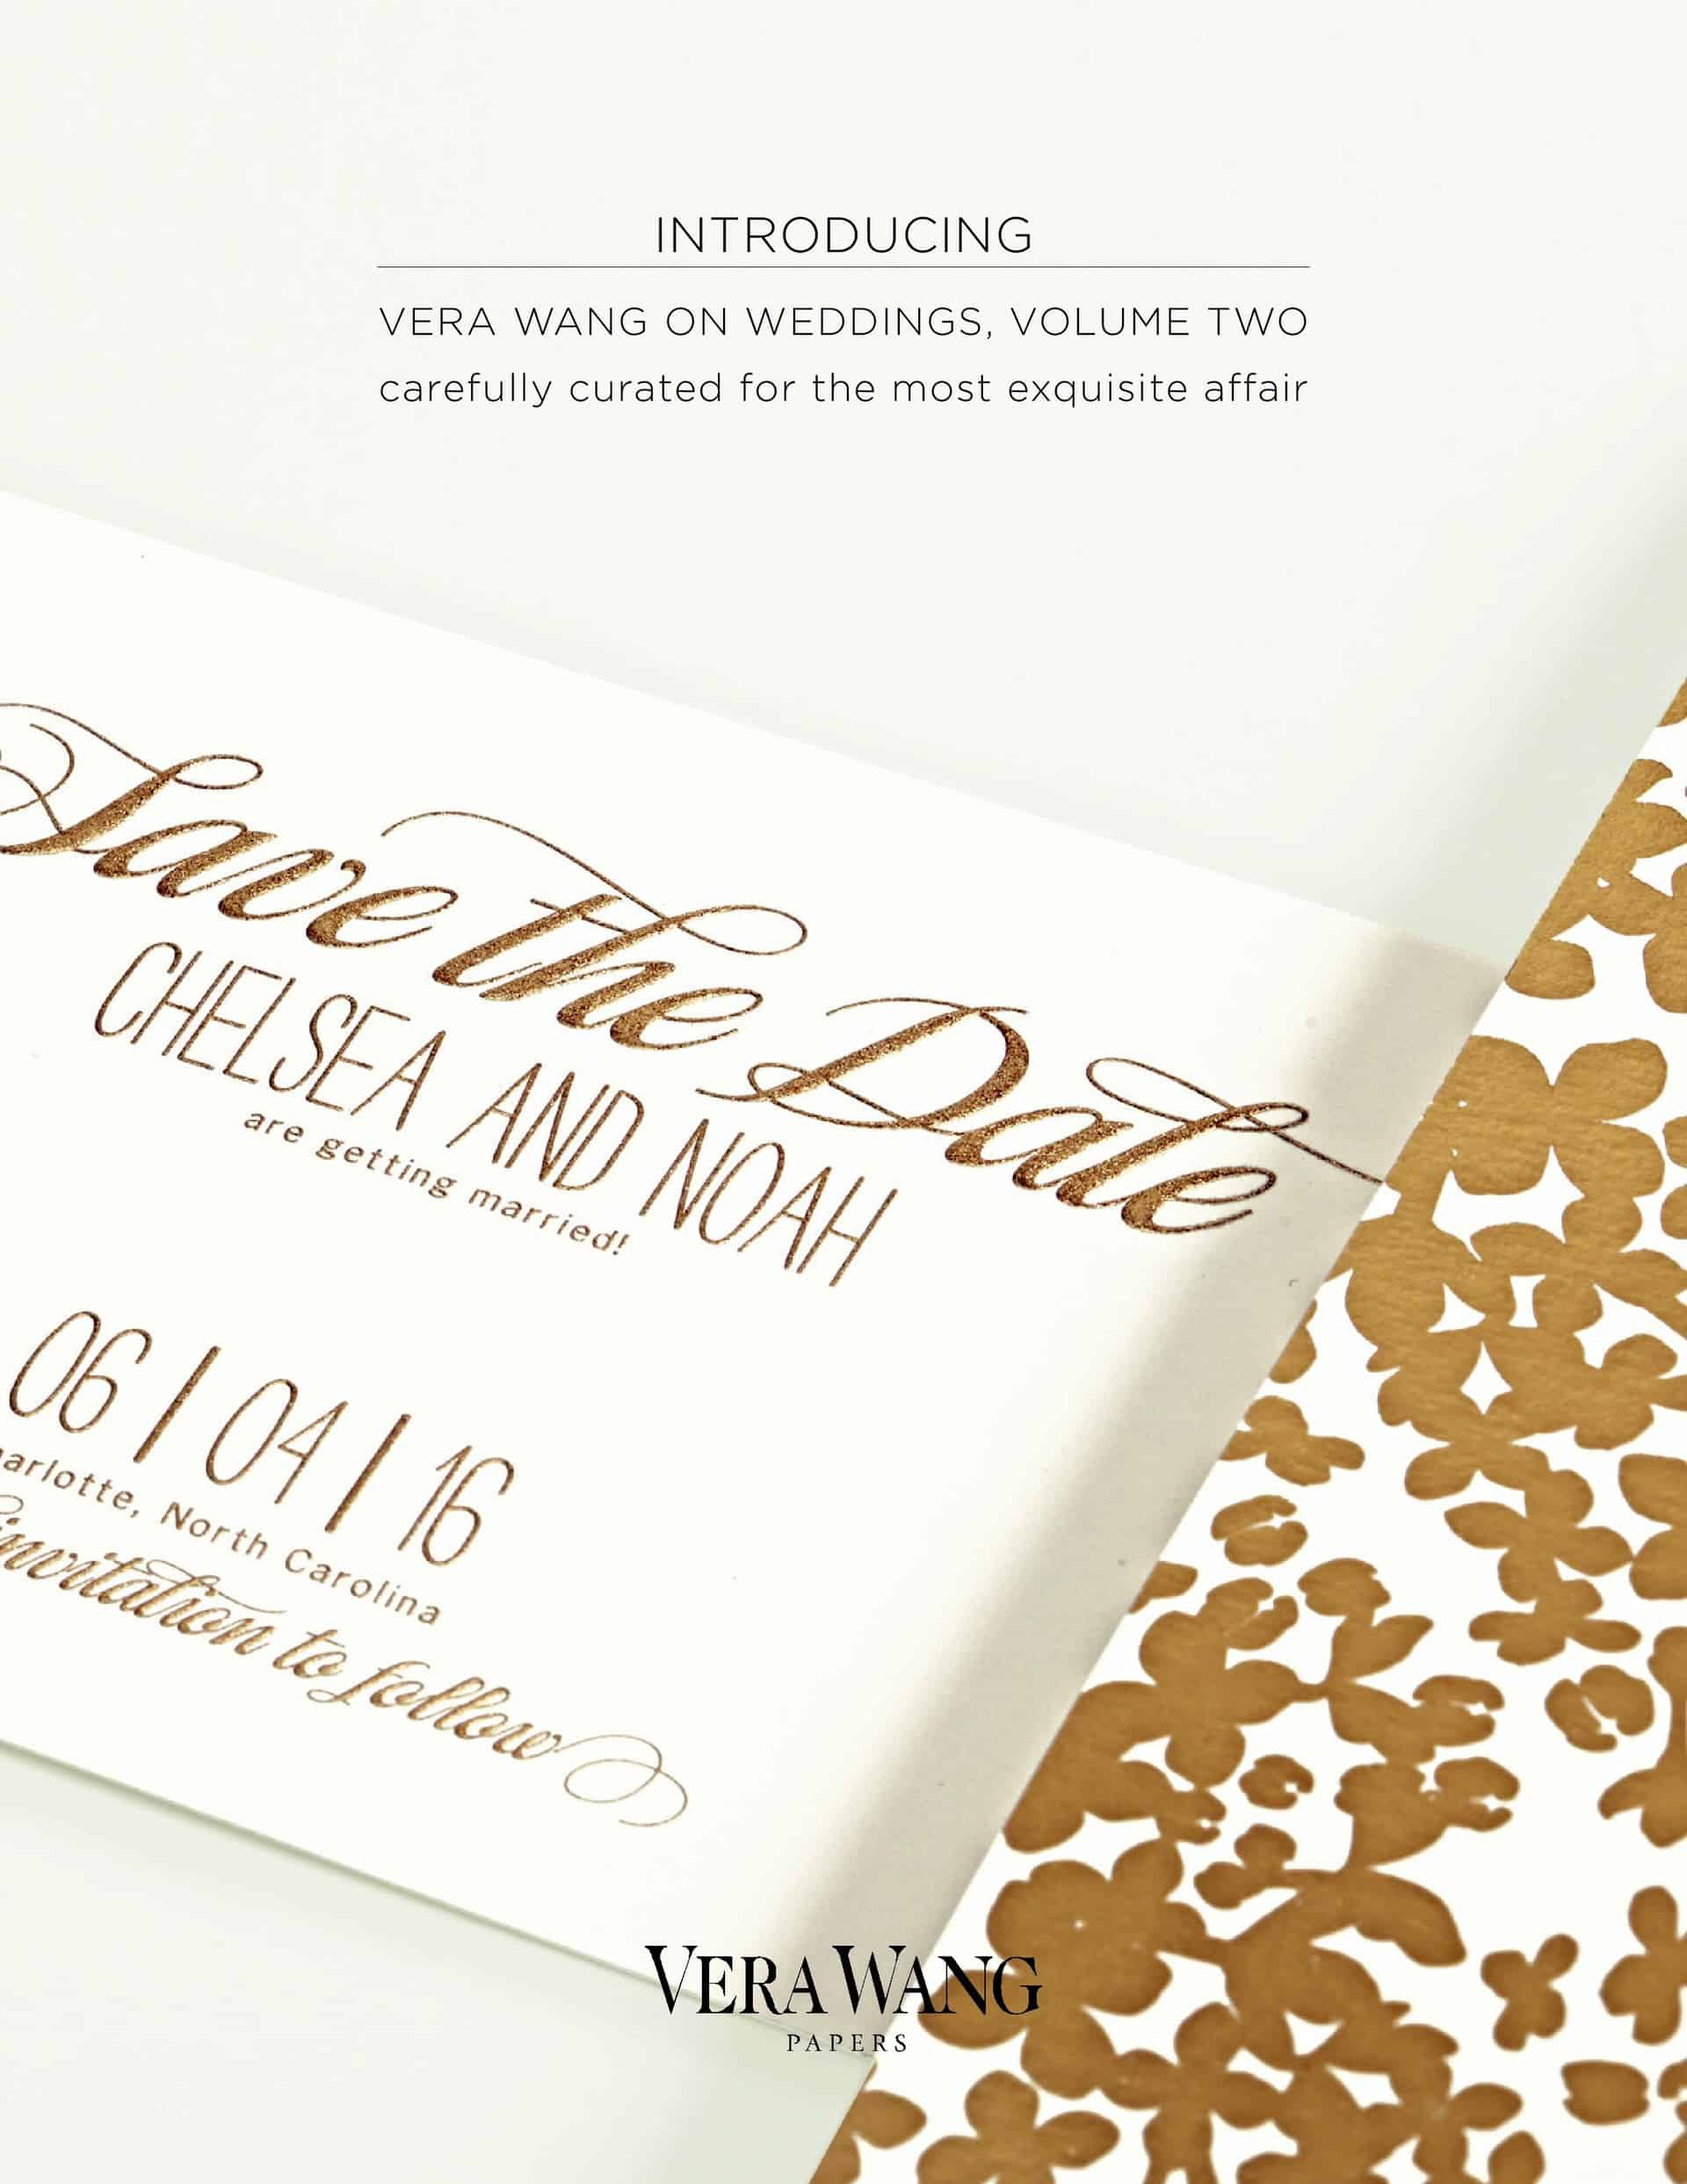 Vera Wang Papers on Weddings Volume Two Gold Confetti